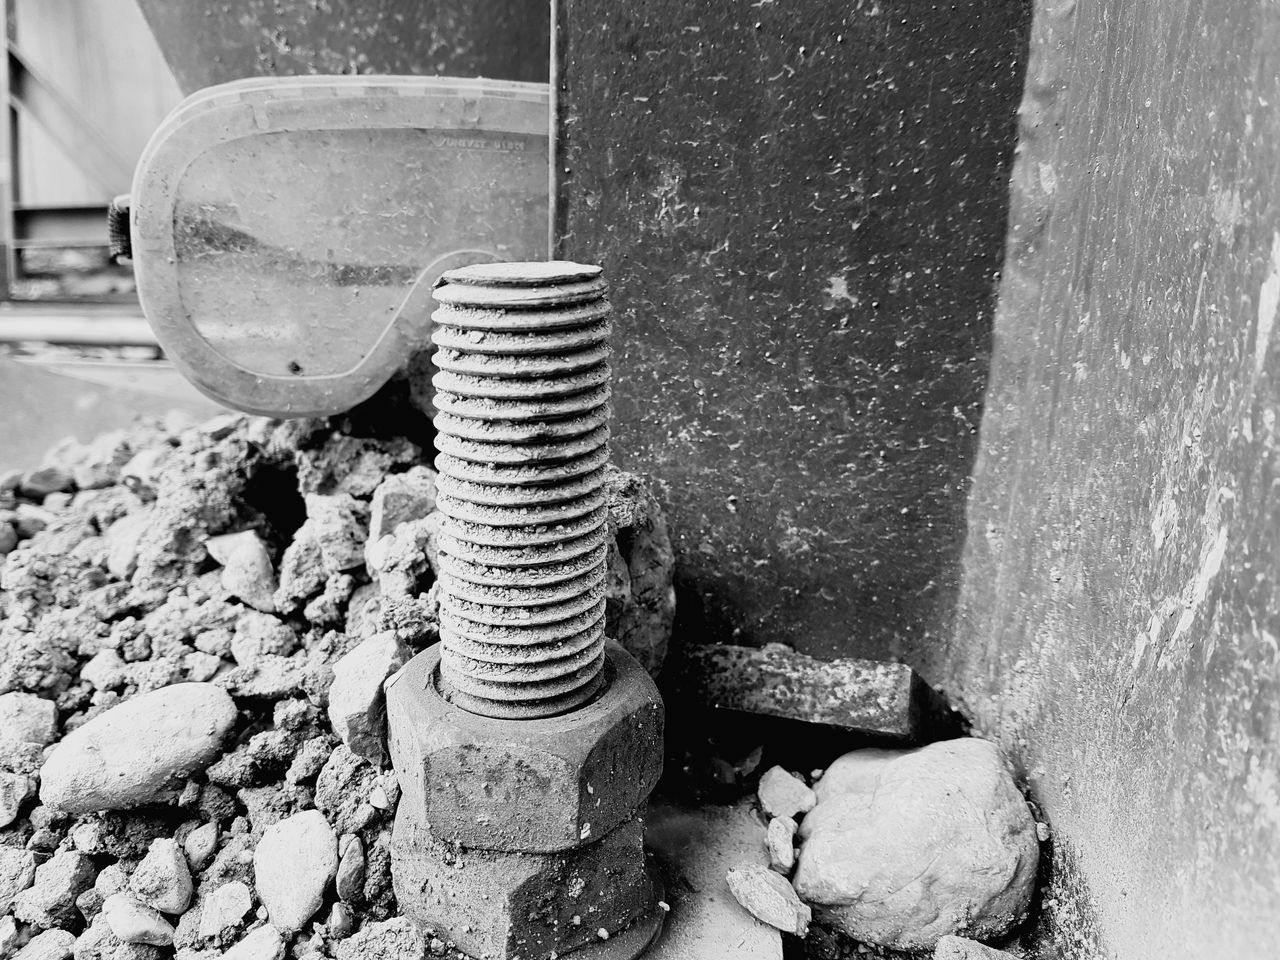 metal, day, machinery, solid, no people, close-up, abandoned, rock, bolt, outdoors, old, nut - fastener, damaged, focus on foreground, stone - object, rusty, rock - object, decline, industry, nature, deterioration